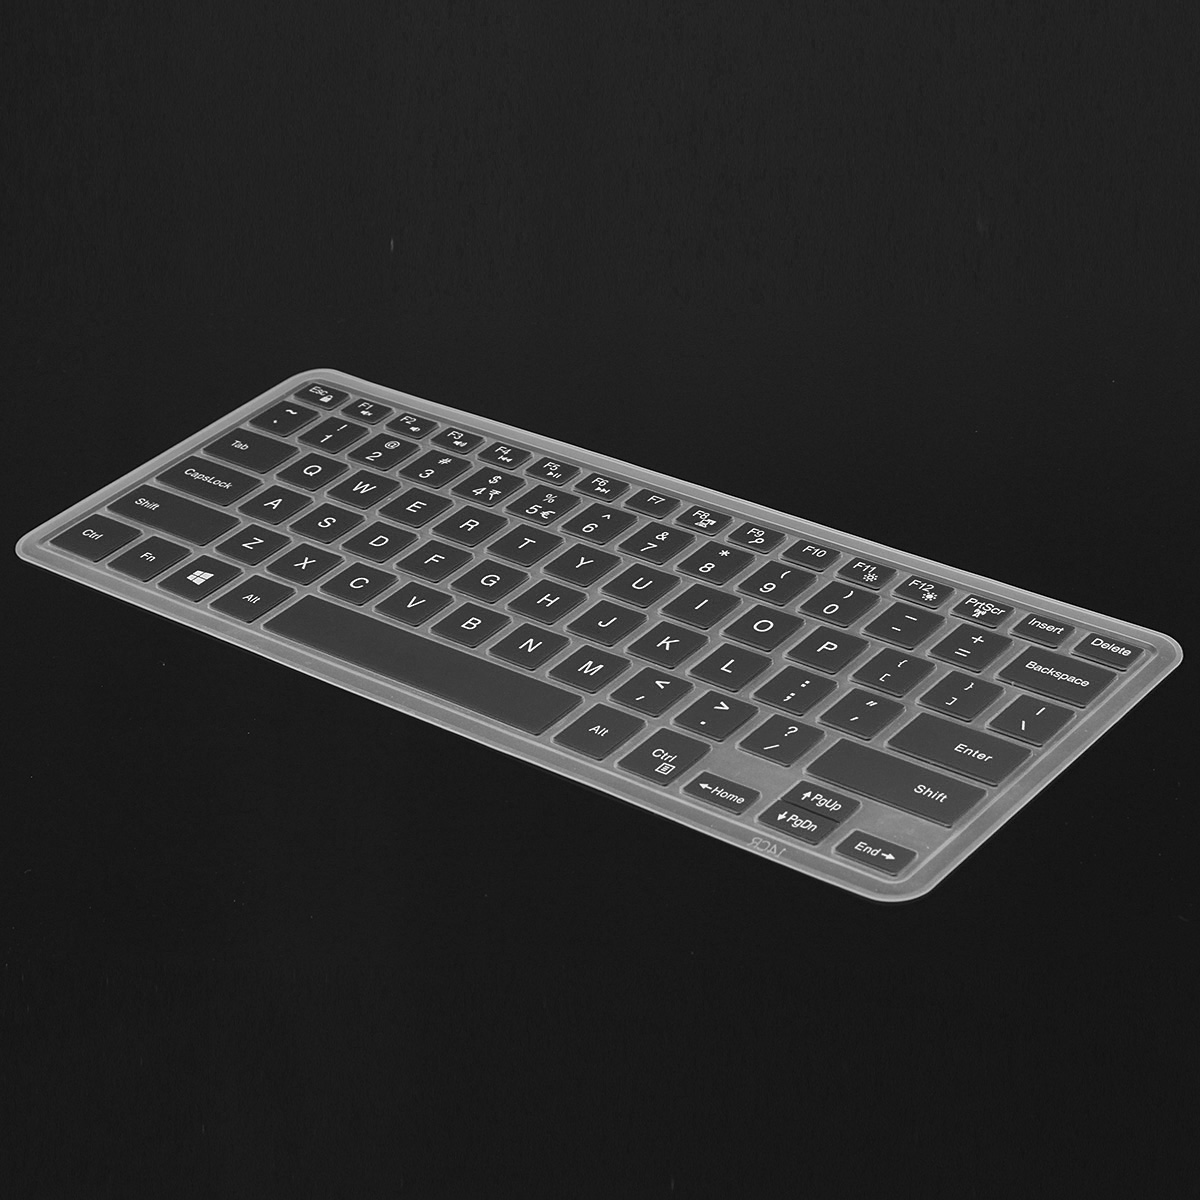 Keyboard Cover Protector For Dell XPS 15 15-9550 / inspiron 14CR 14MR 14SR 49